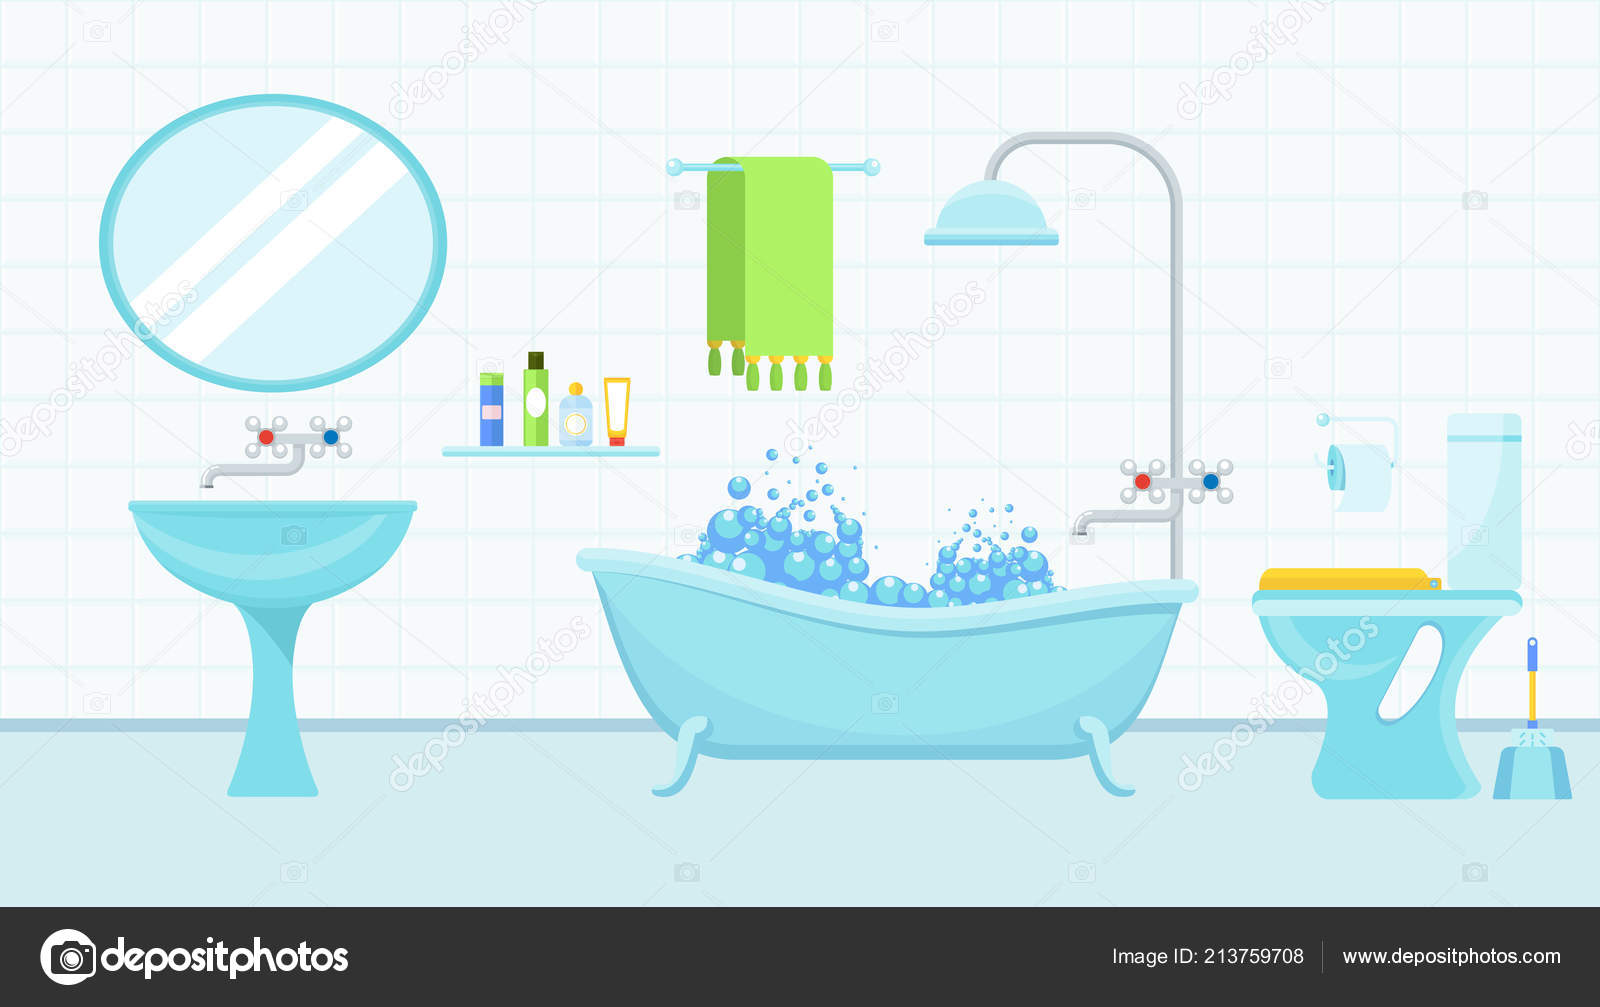 Interior Of Bathroom With A Toilet And Accessories For Washing Stock Vector C Quarta 213759708